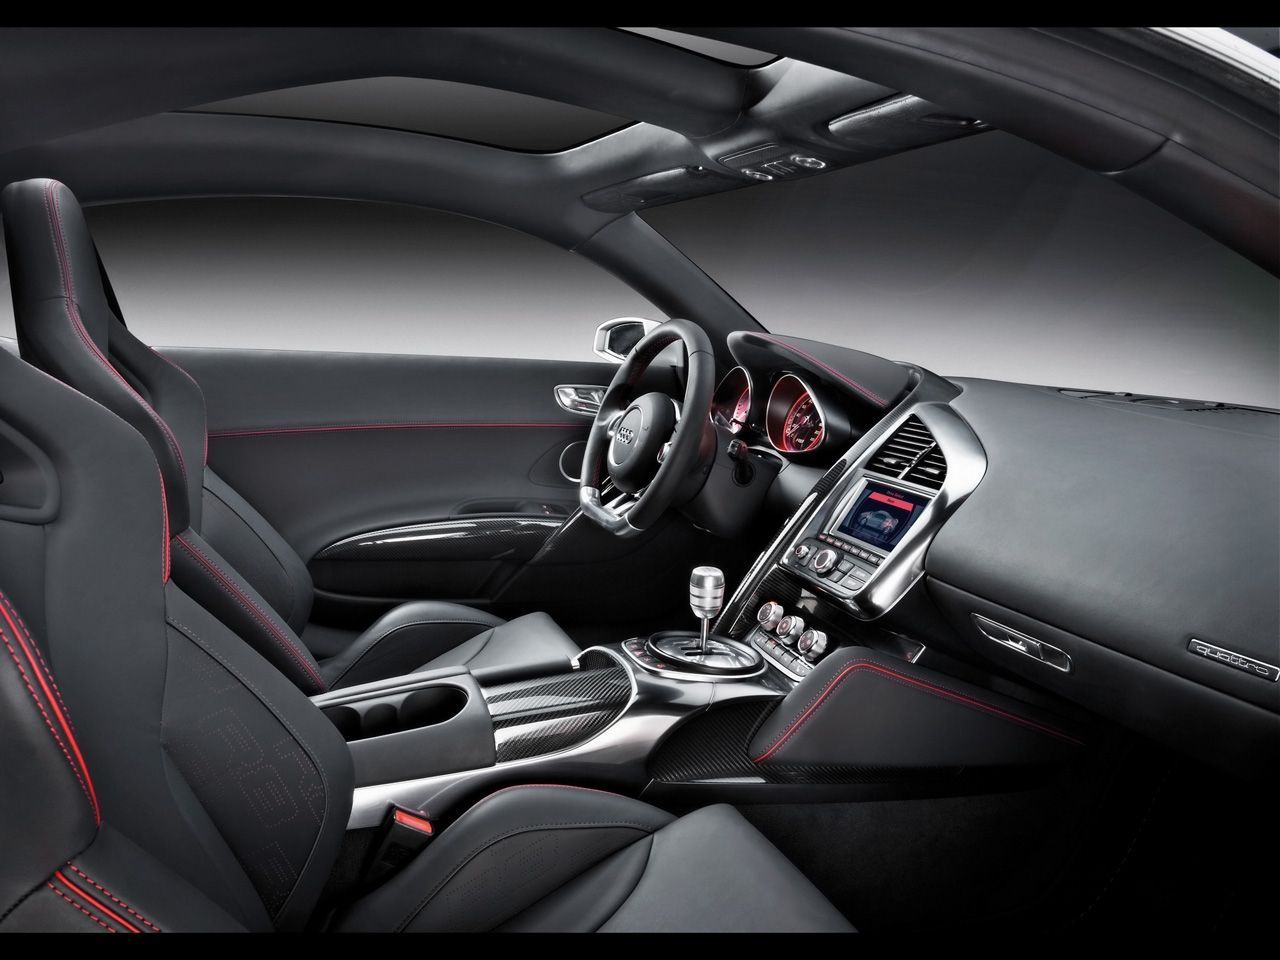 audi r8 v12 interior wallpapers 2008 audi r8 v12 tdi. Black Bedroom Furniture Sets. Home Design Ideas